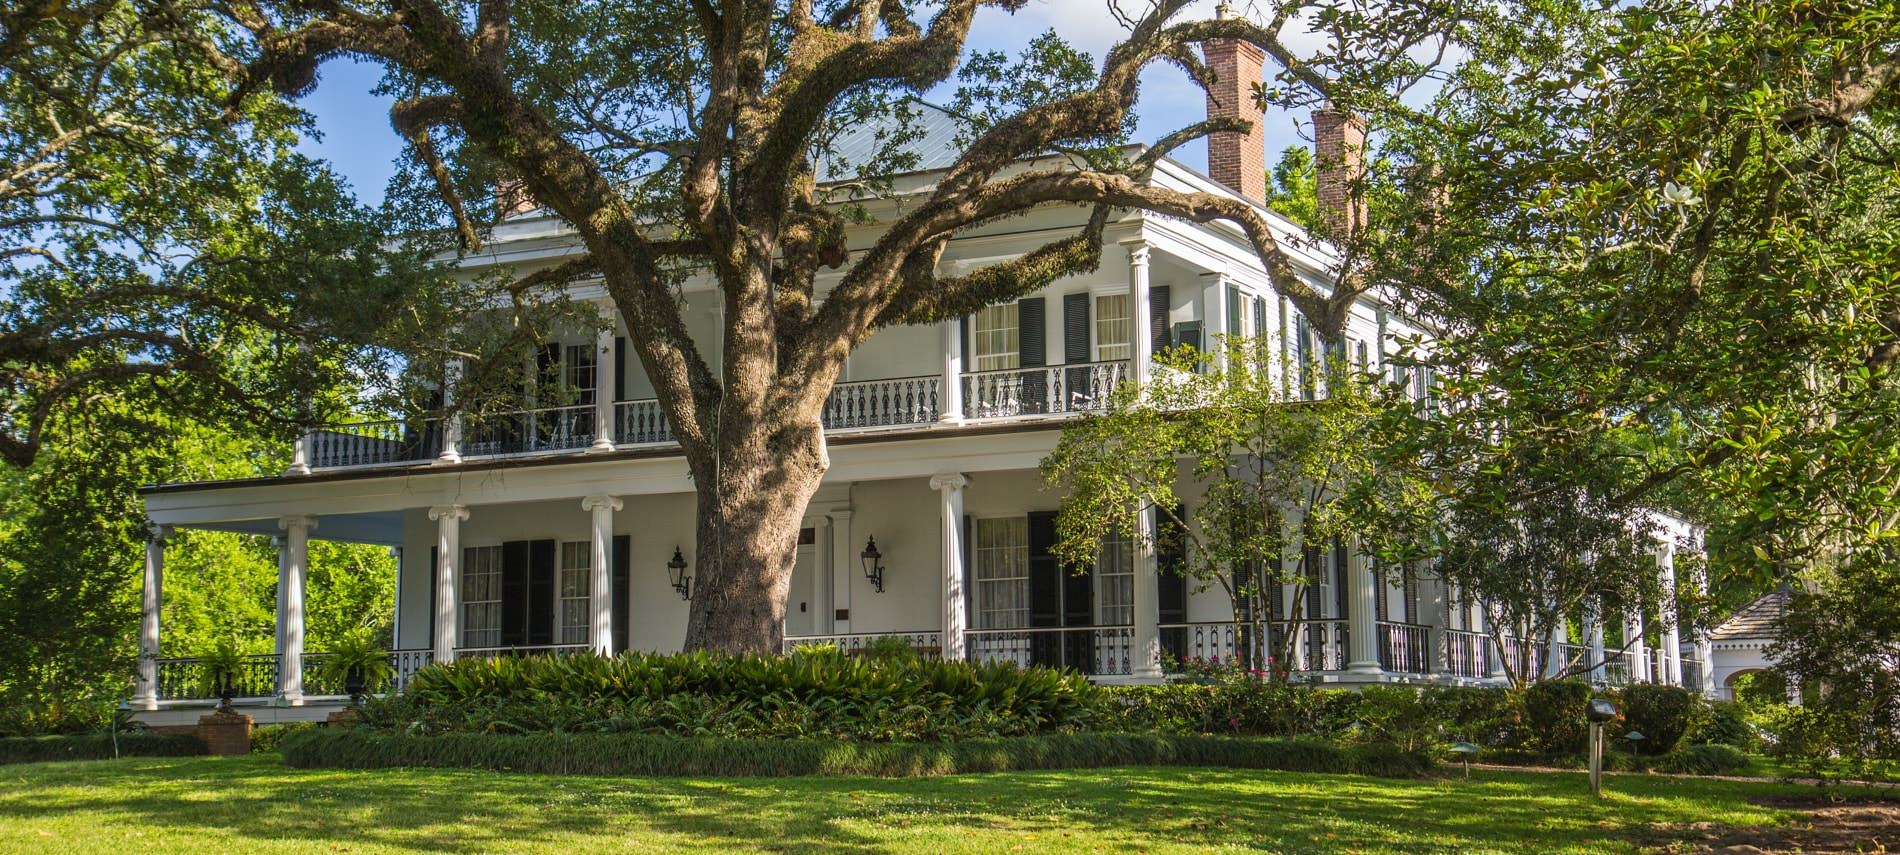 Angled view of two story white b&b with white pillars and black shutters surrounding many windows; trees surround b&b